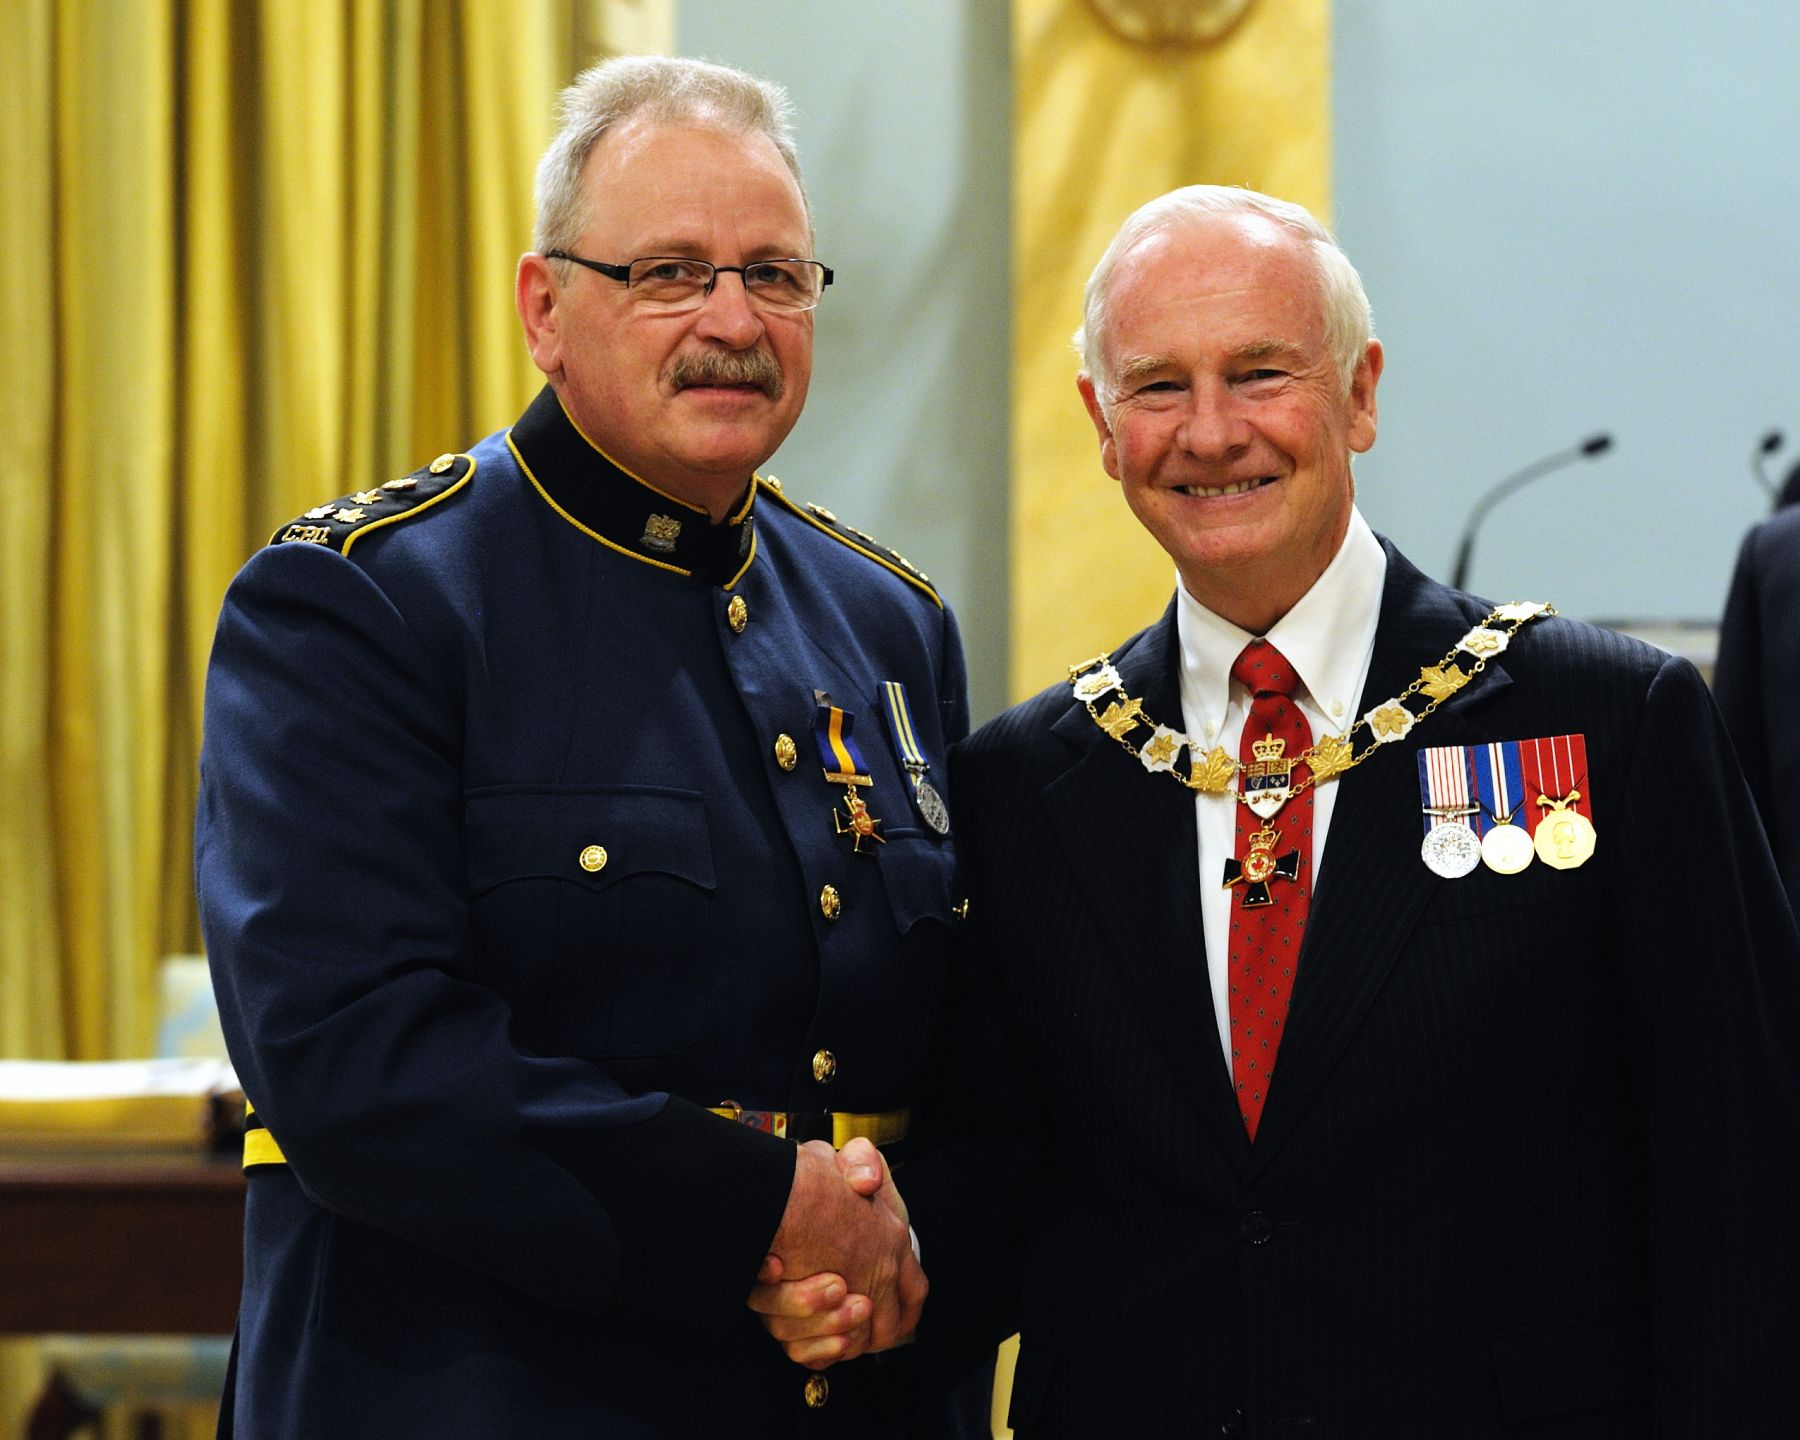 His Excellency presented the Order of Merit of the Police Forces at the Officer level (O.O.M.) to Chief A. Paul Smith, O.O.M., of the Charlottetown Police Services, Prince Edward Island.